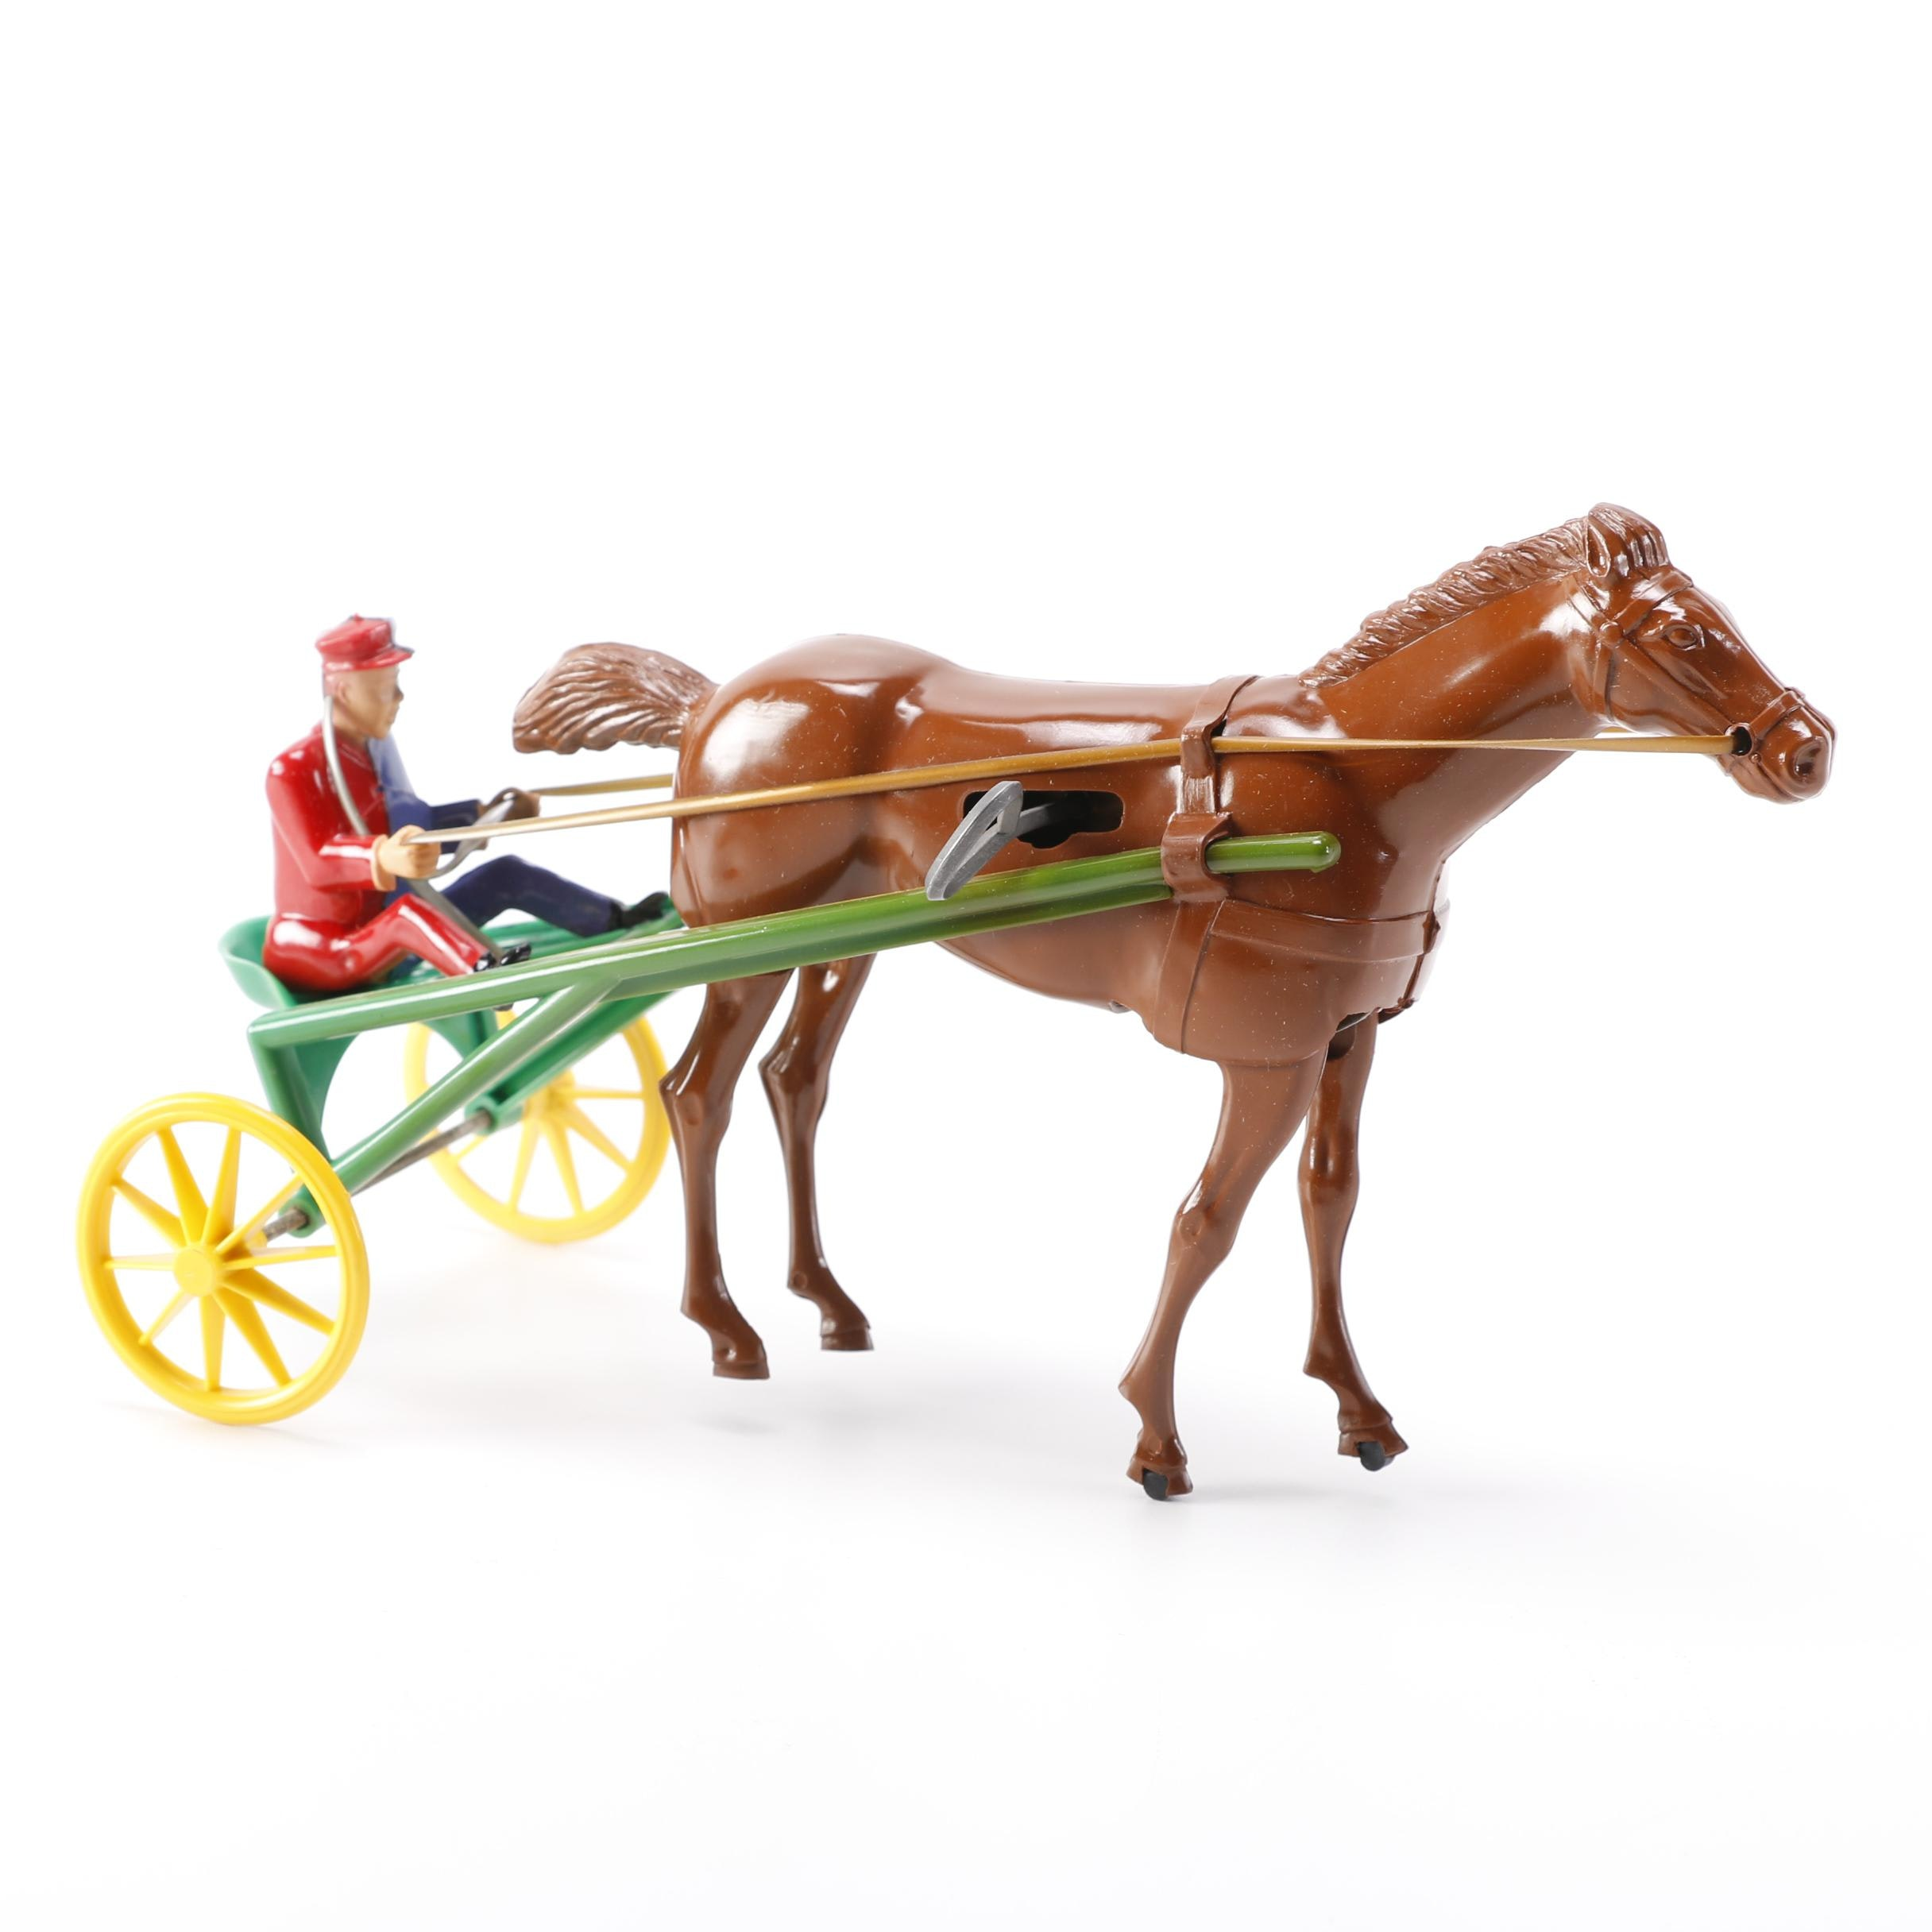 1950s Sulky Racer by Wolverine Toys